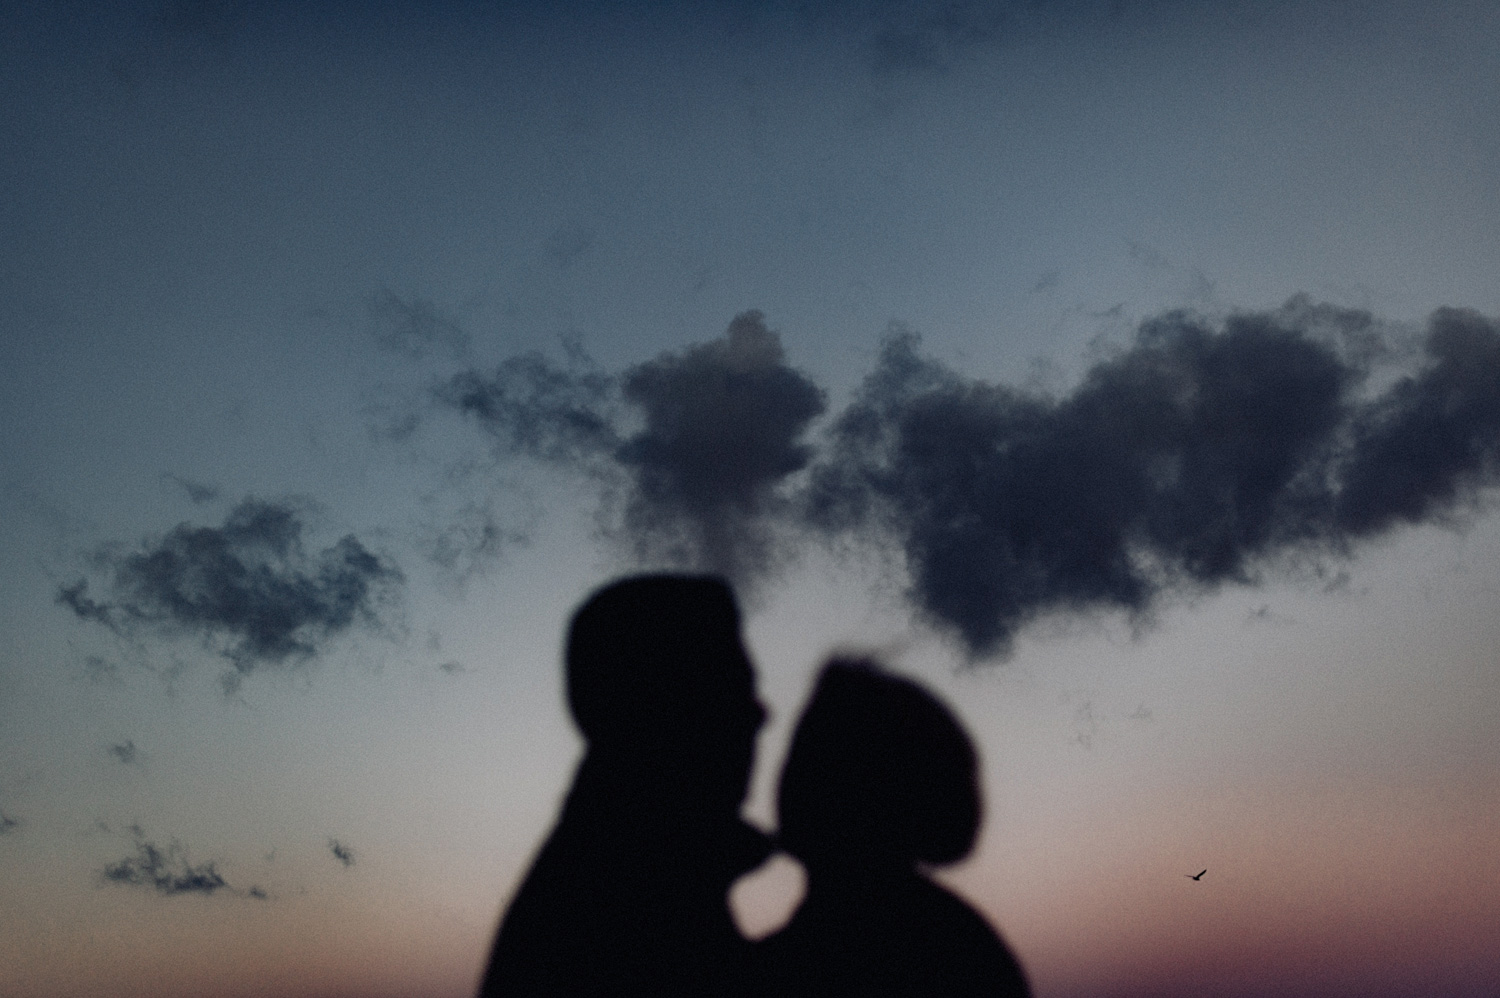 Silhouette shot of couple in front of dusk sky